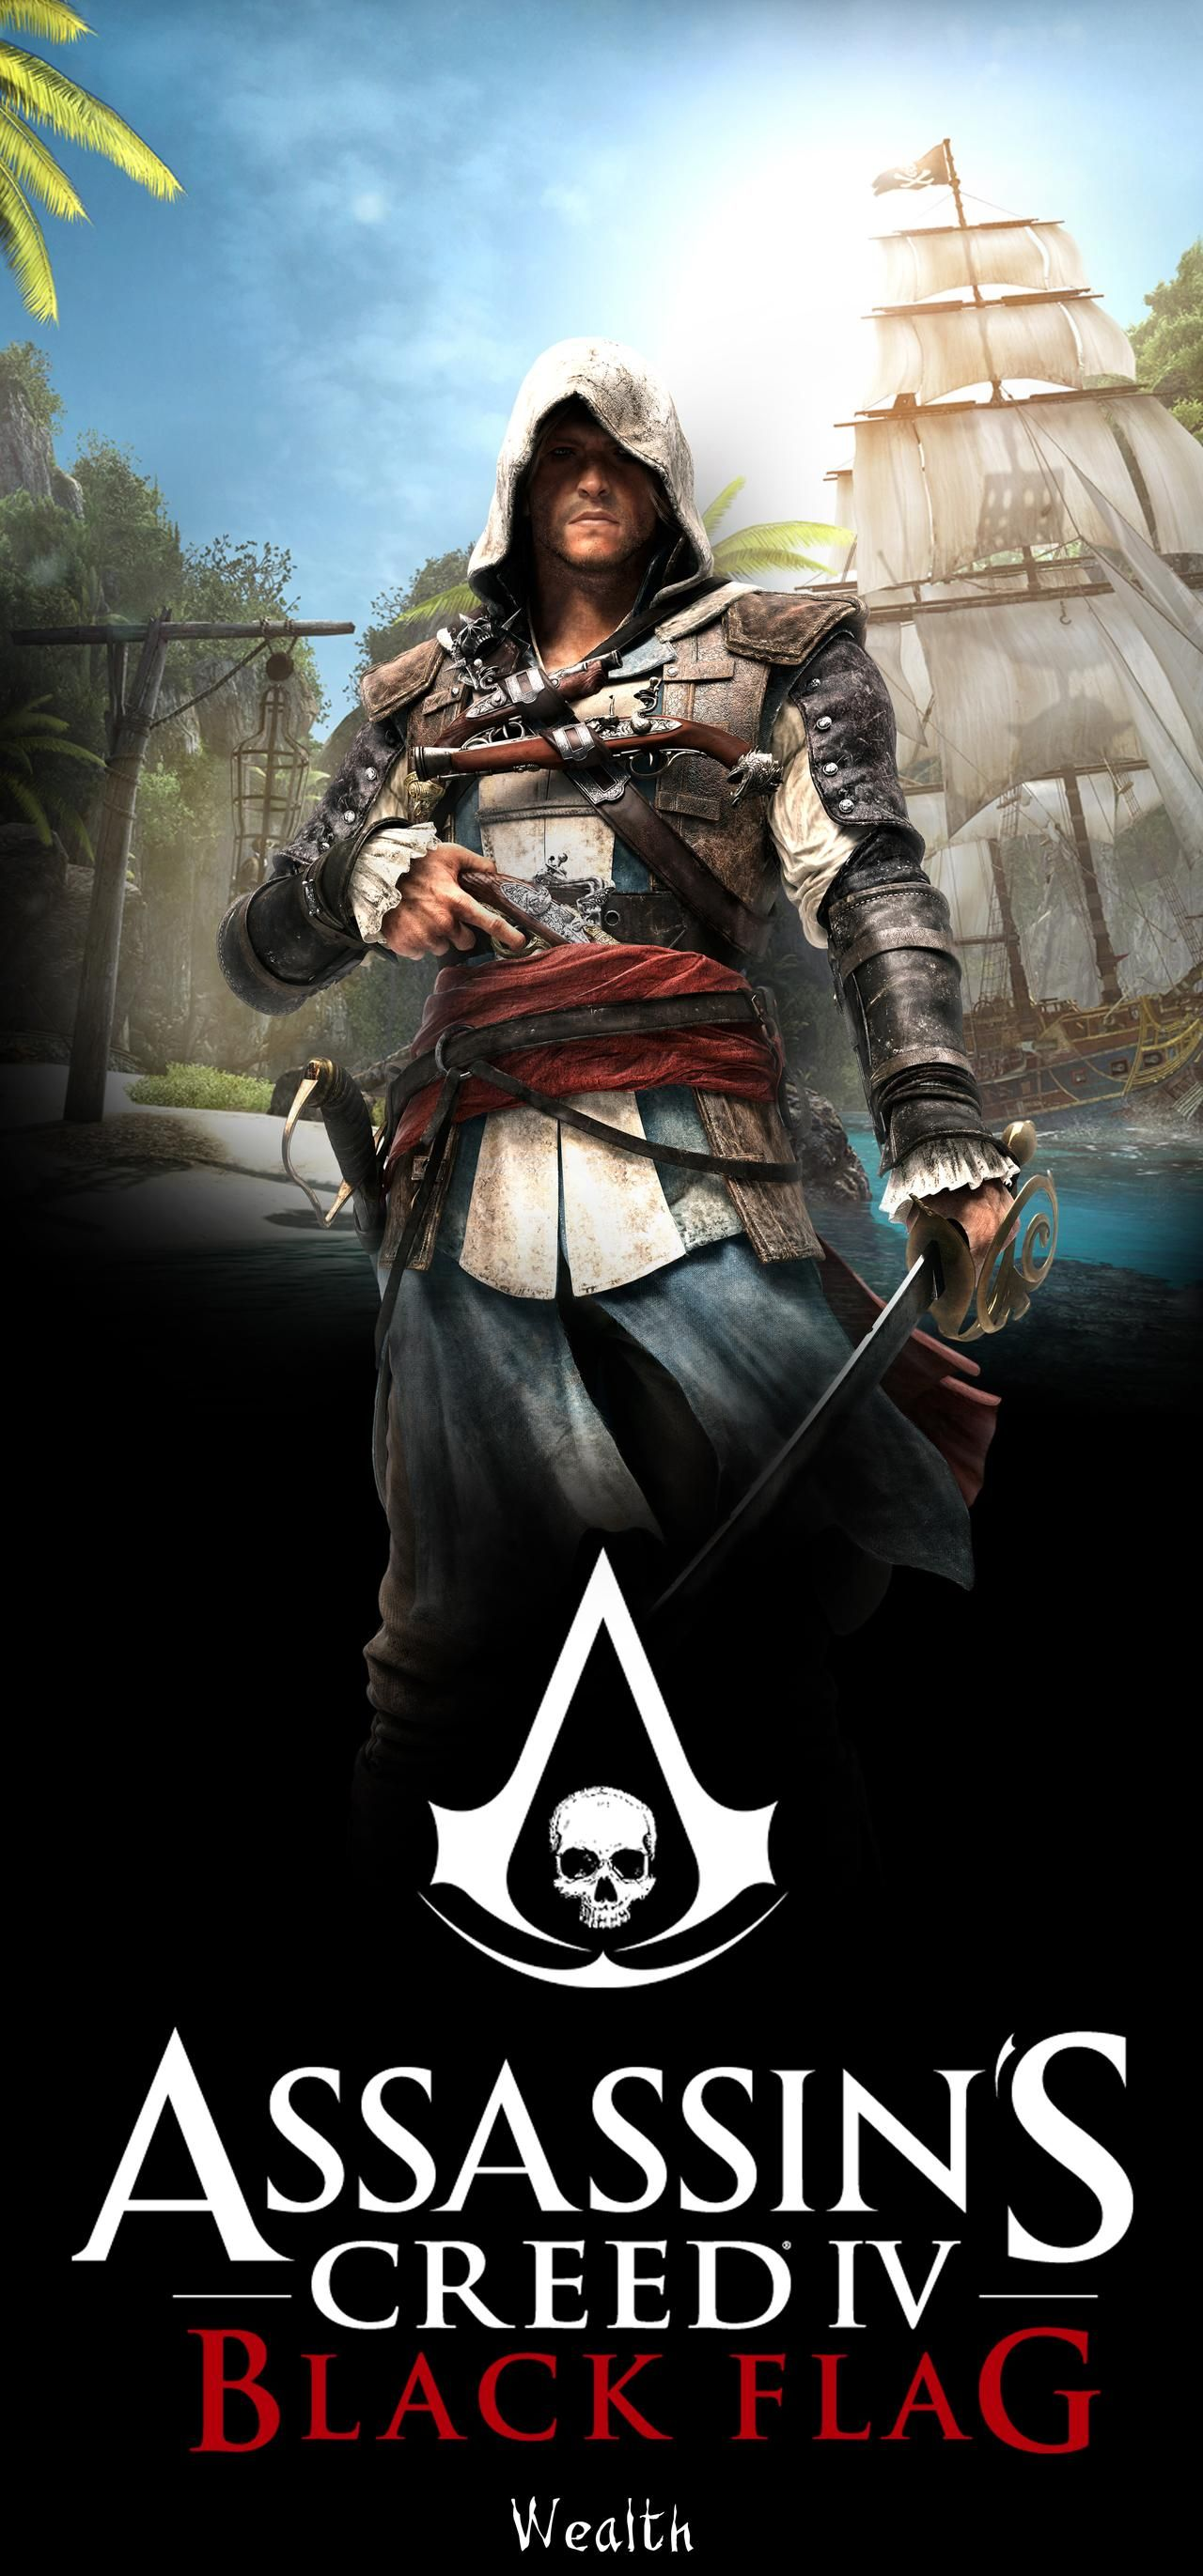 Assassin's Creed Poster (Large) Edward by Ven93 on